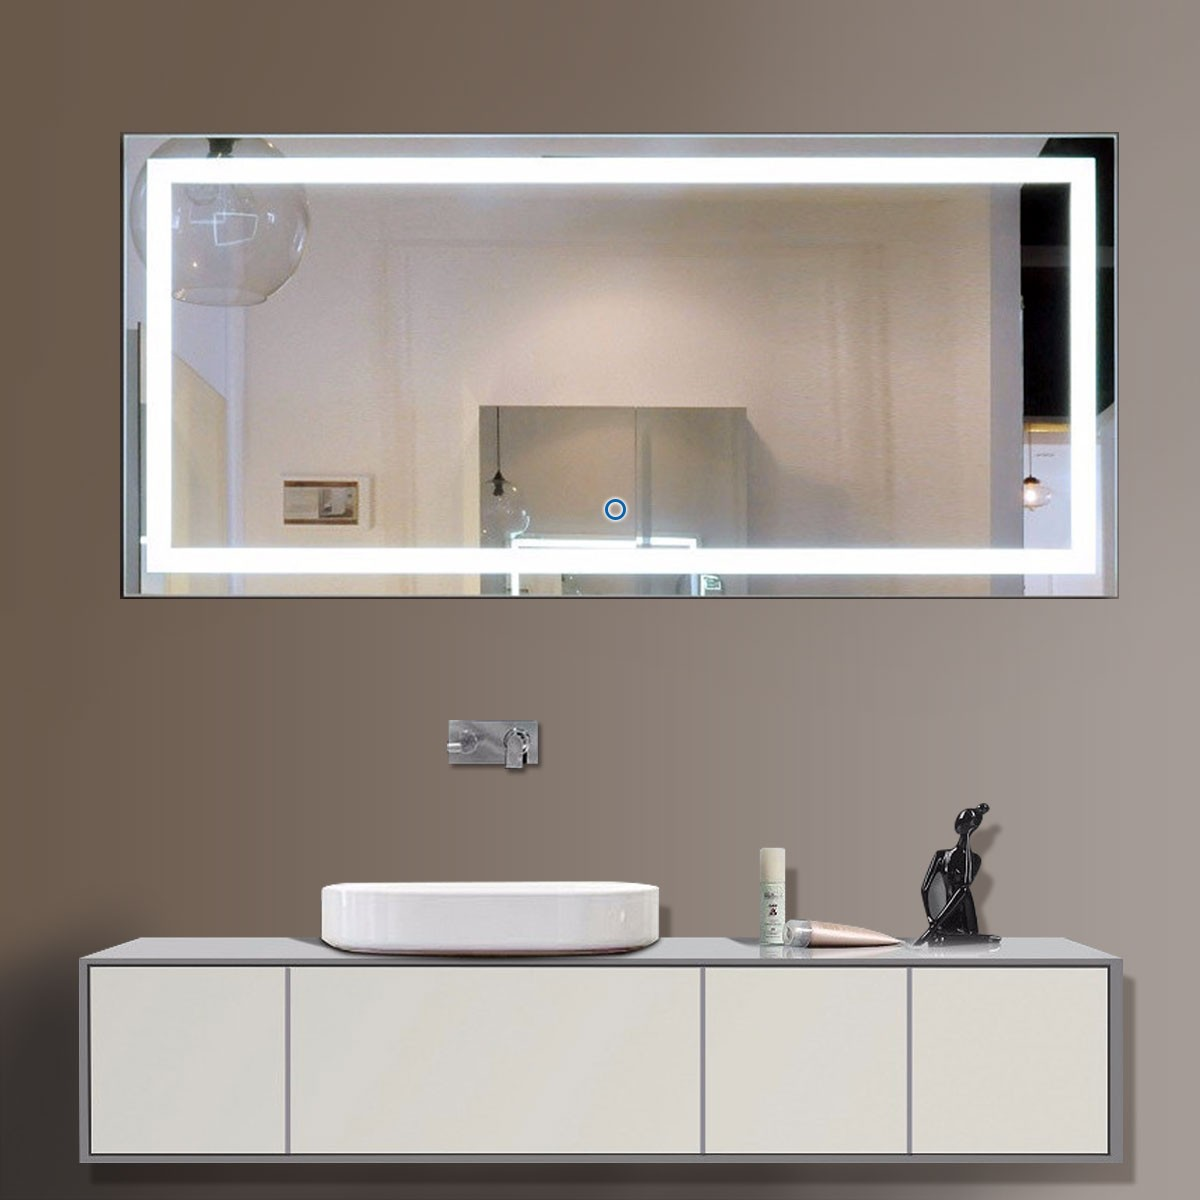 60 X 28 In Horizontal Led Mirror Touch Button Dk Od Ck010 C Decoraport Usa